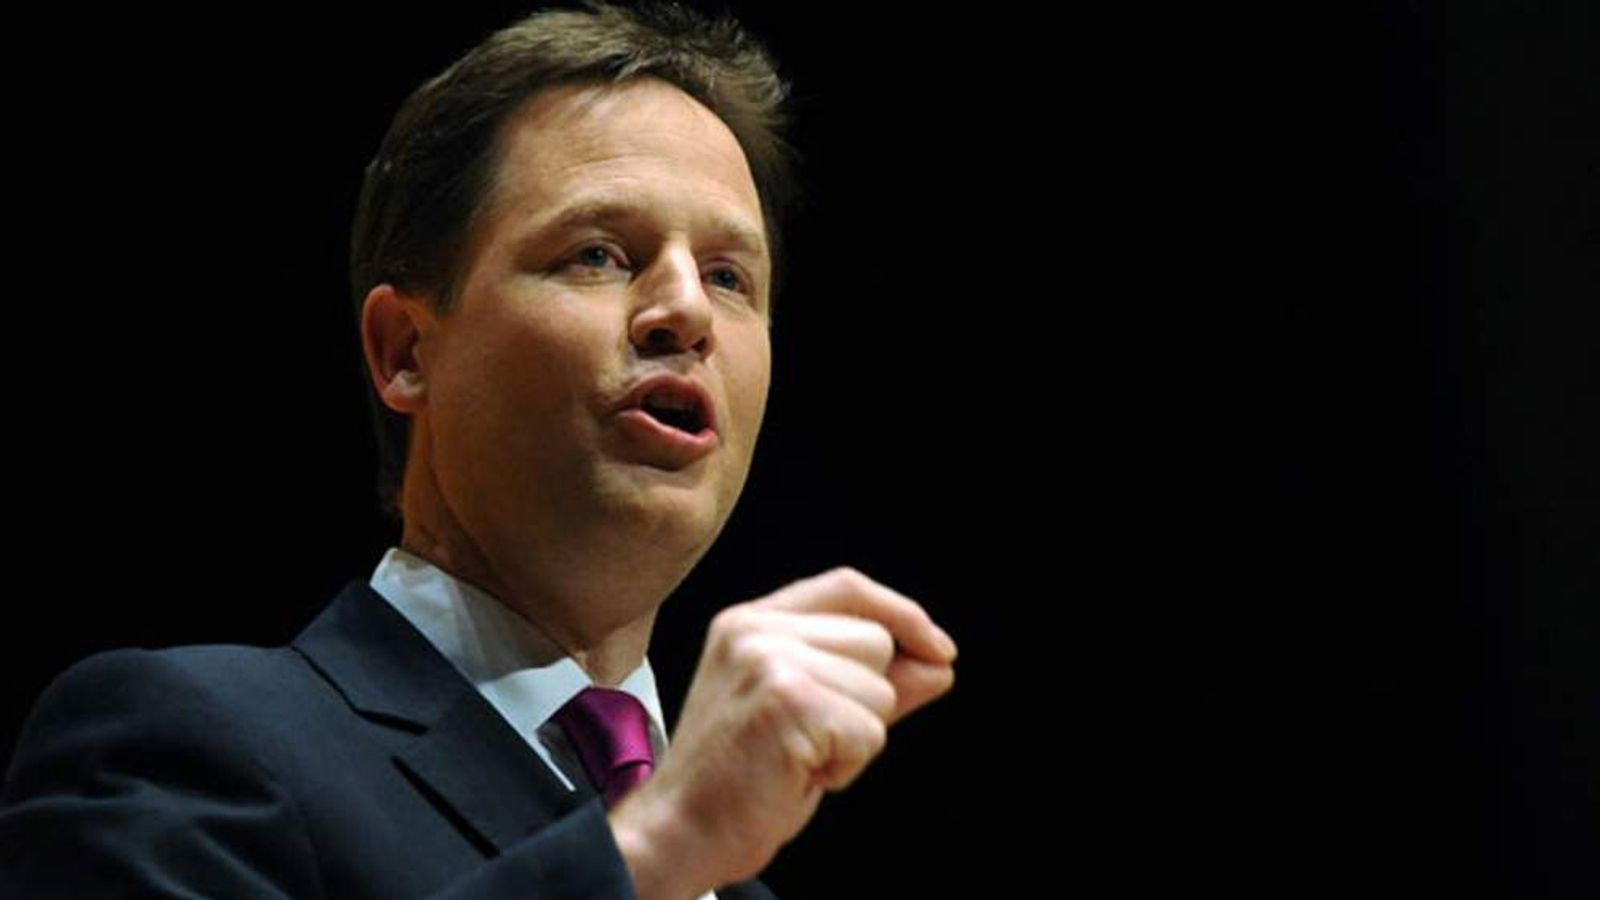 Deputy Prime Minister Nick Clegg will try to rally supporters